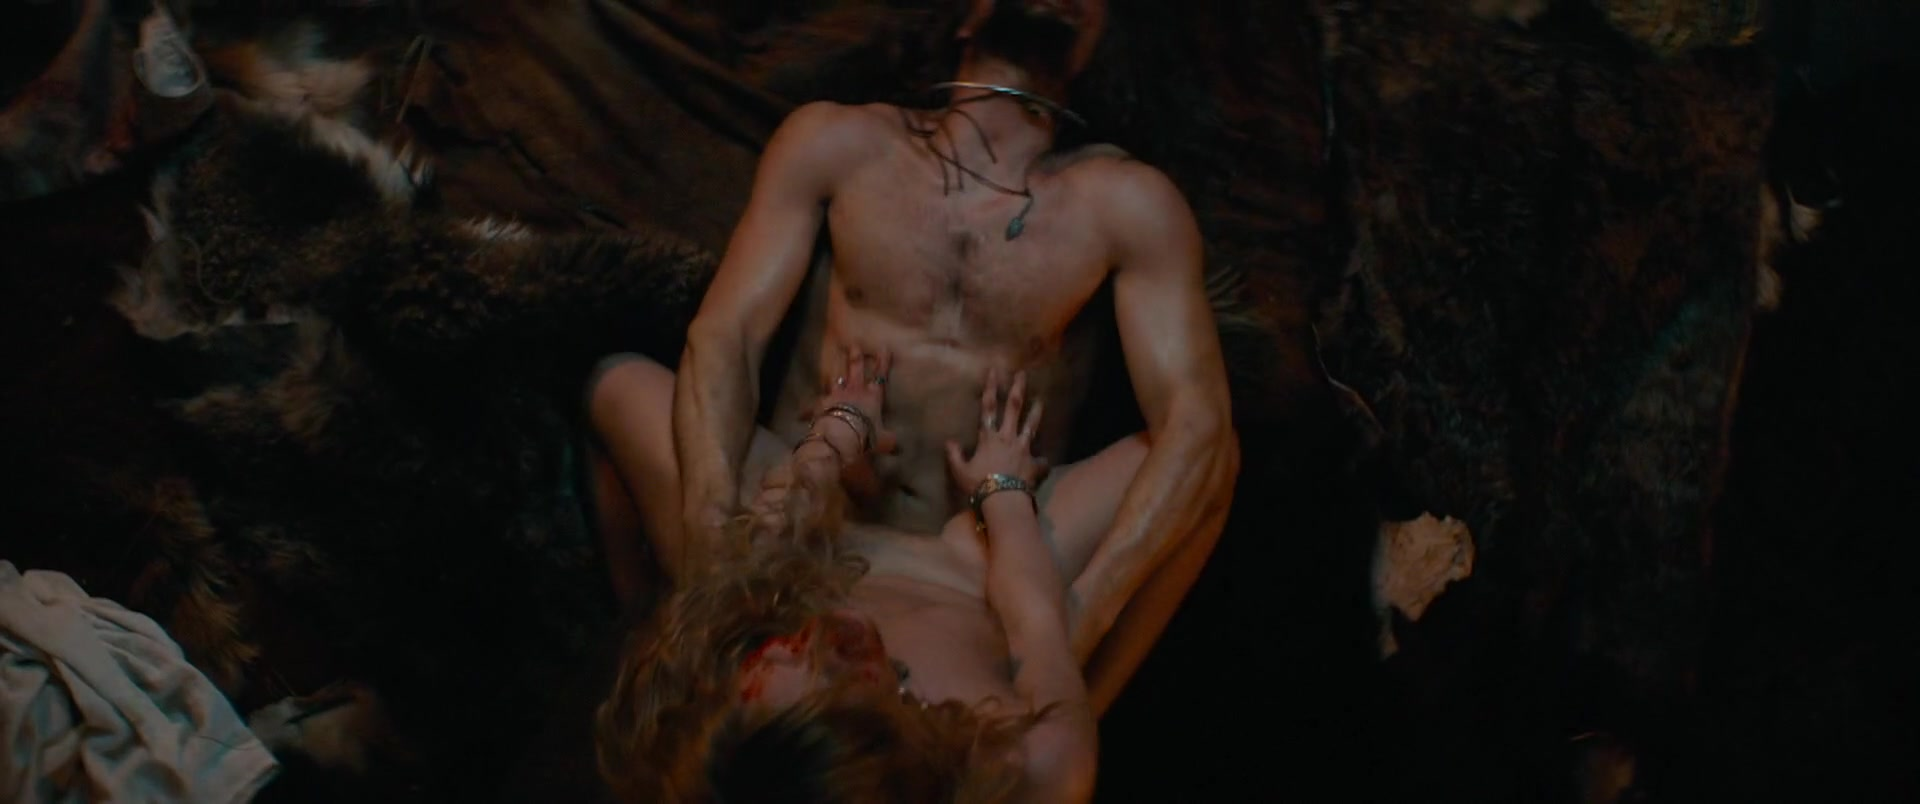 Really. Vikings tv show nude scene